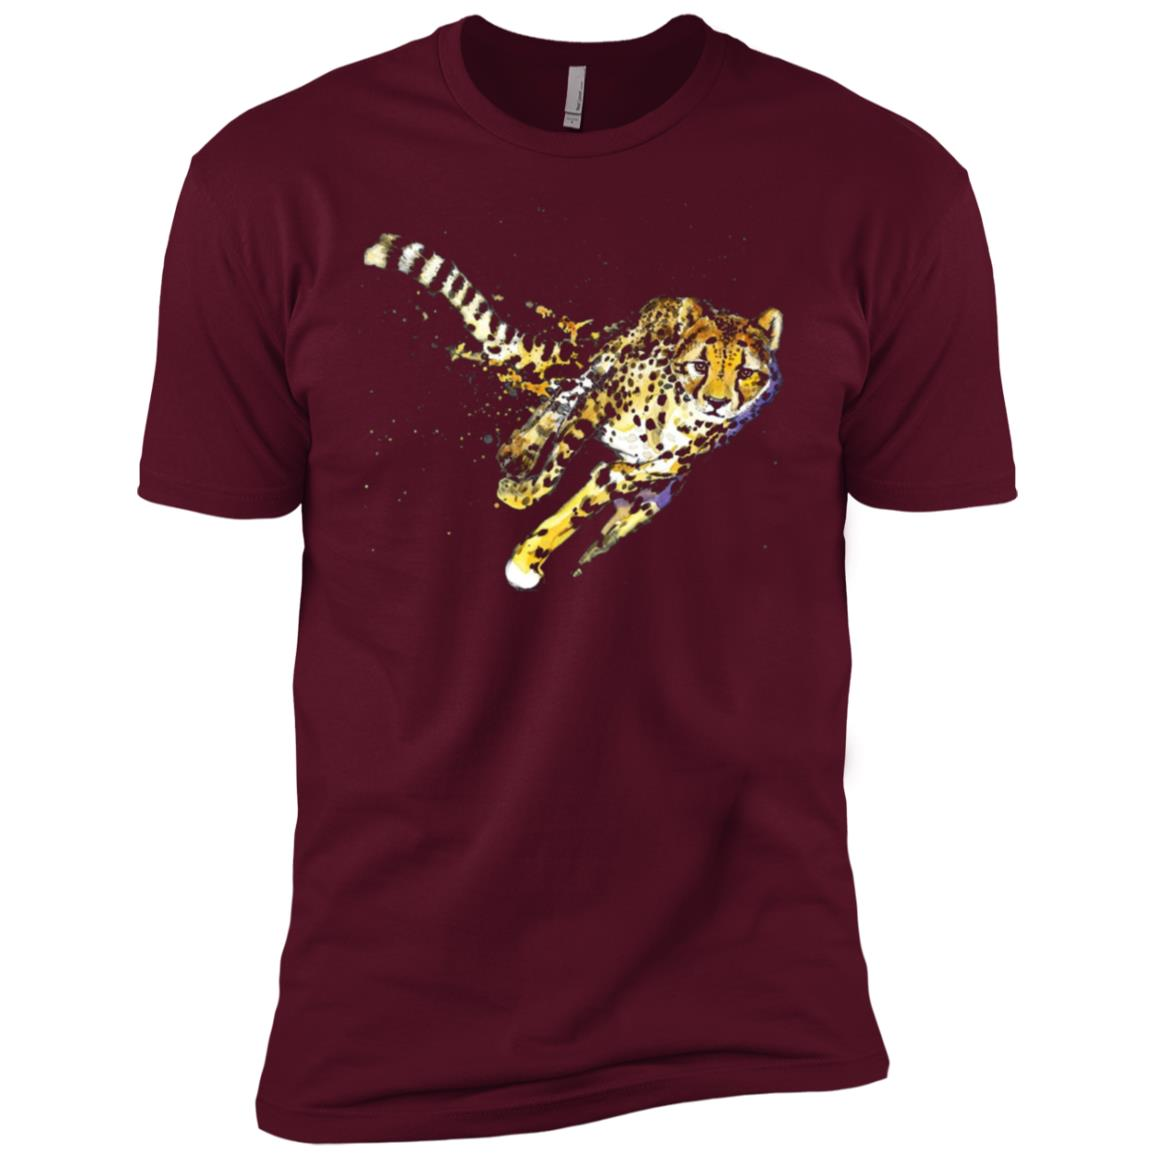 Cheetah Cool Design Running Cheetah Gift Tee Men Short Sleeve T-Shirt